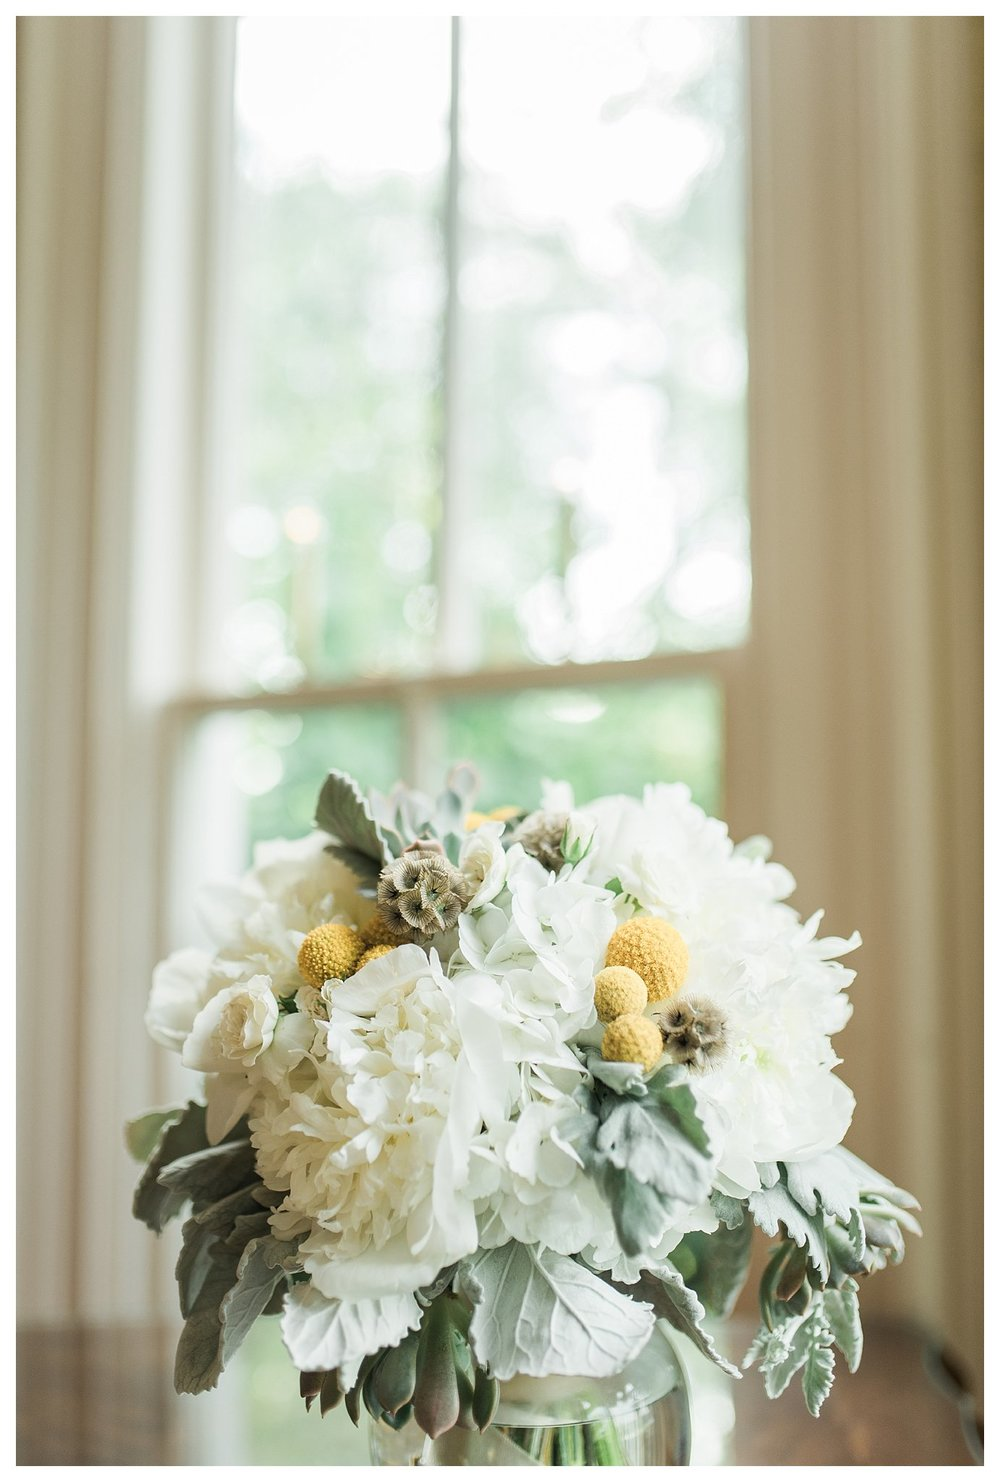 richwood-on-the-river-everleigh-photography-roby-and-tabitha-foree-wedding-17